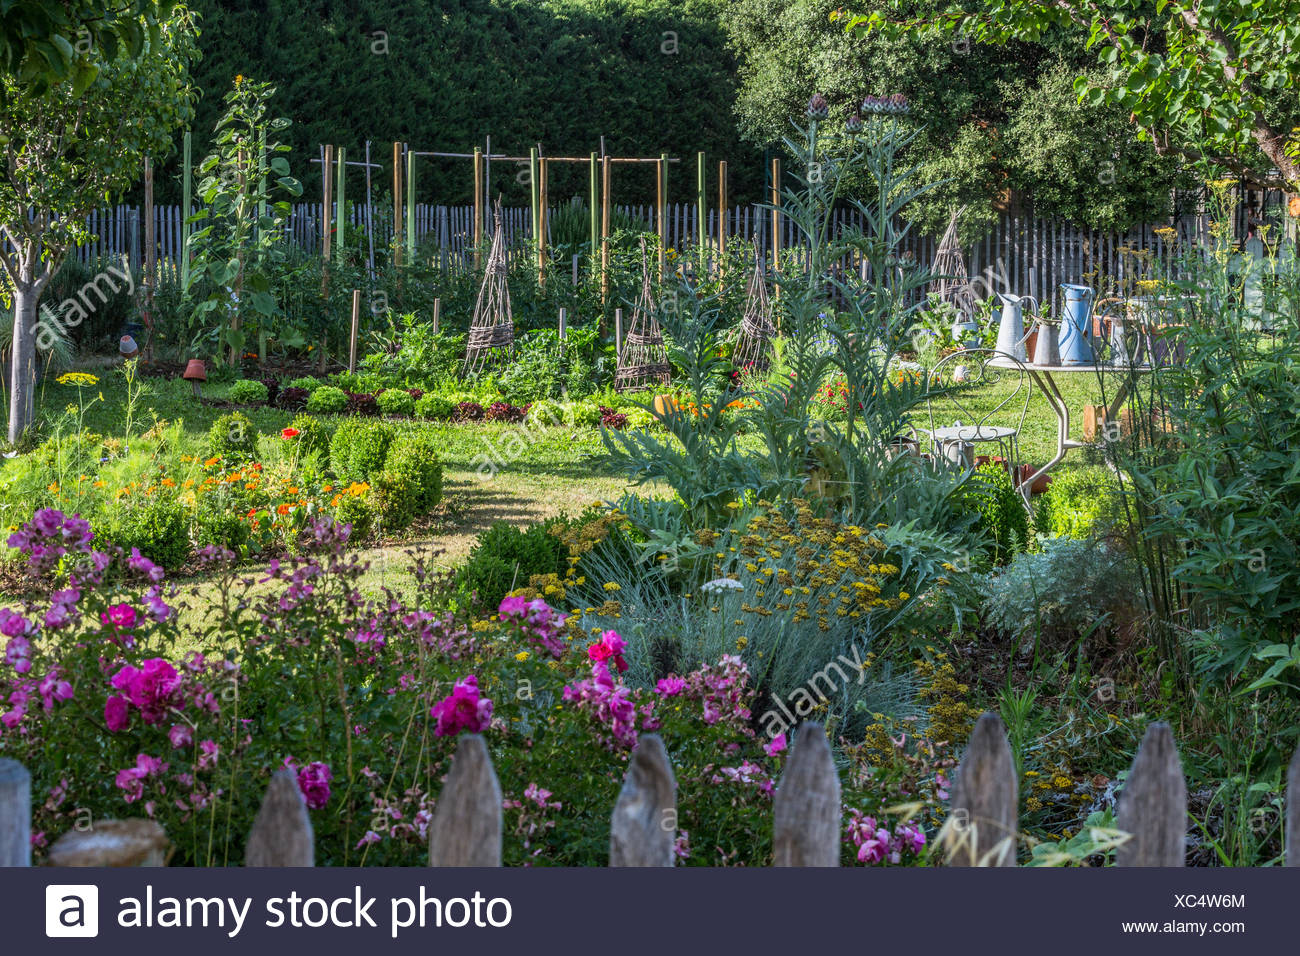 Rose-tree 'Néon' in bloom in a kitchen garden - Stock Image